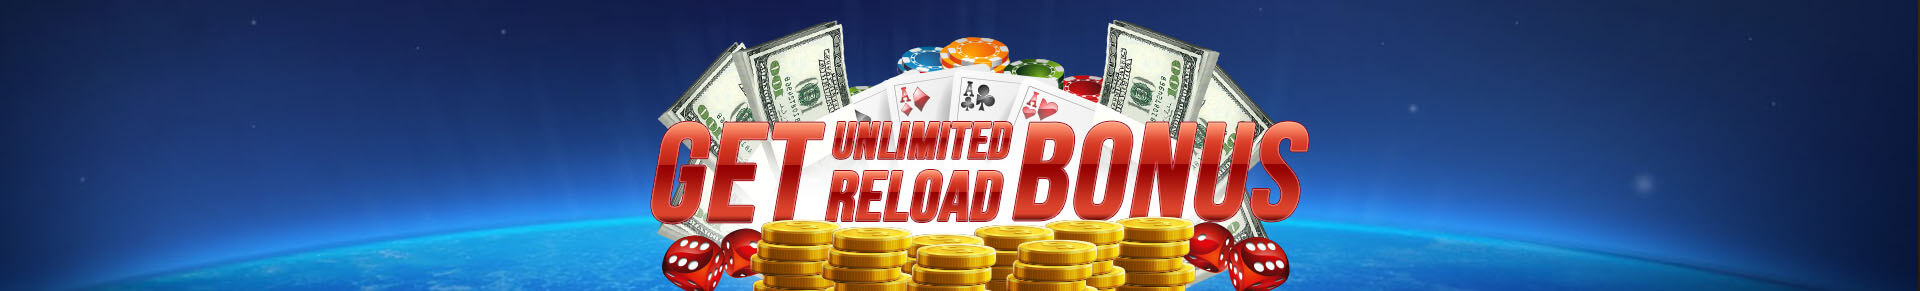 Unlimited Reload Bonus